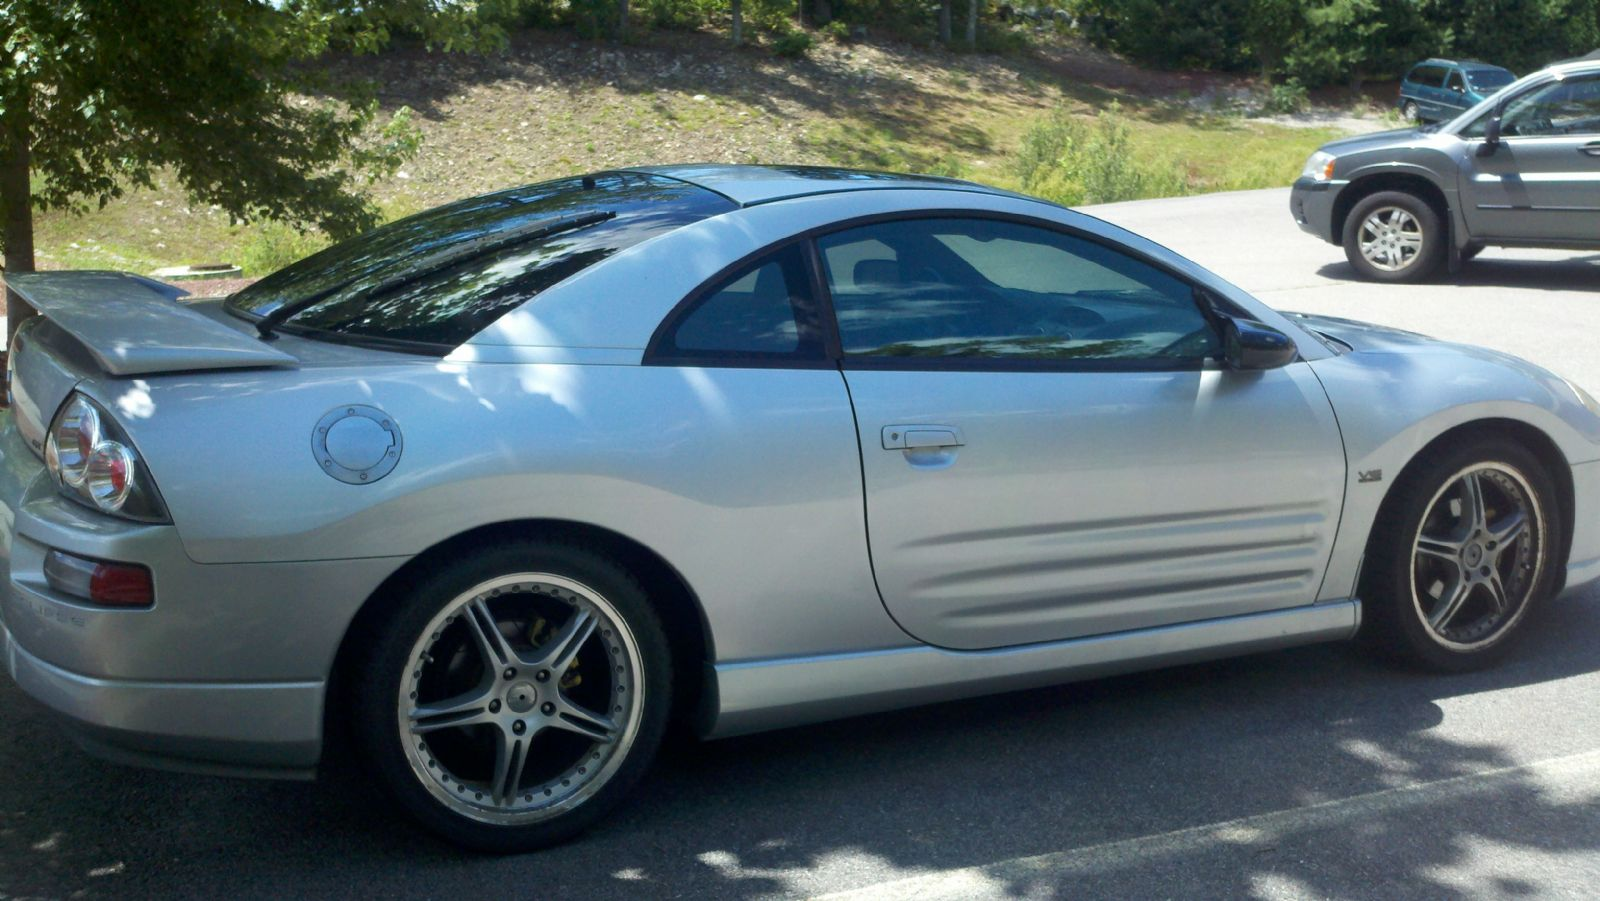 2001 Mitsubishi Eclipse For Sale | Hopedale Machusetts